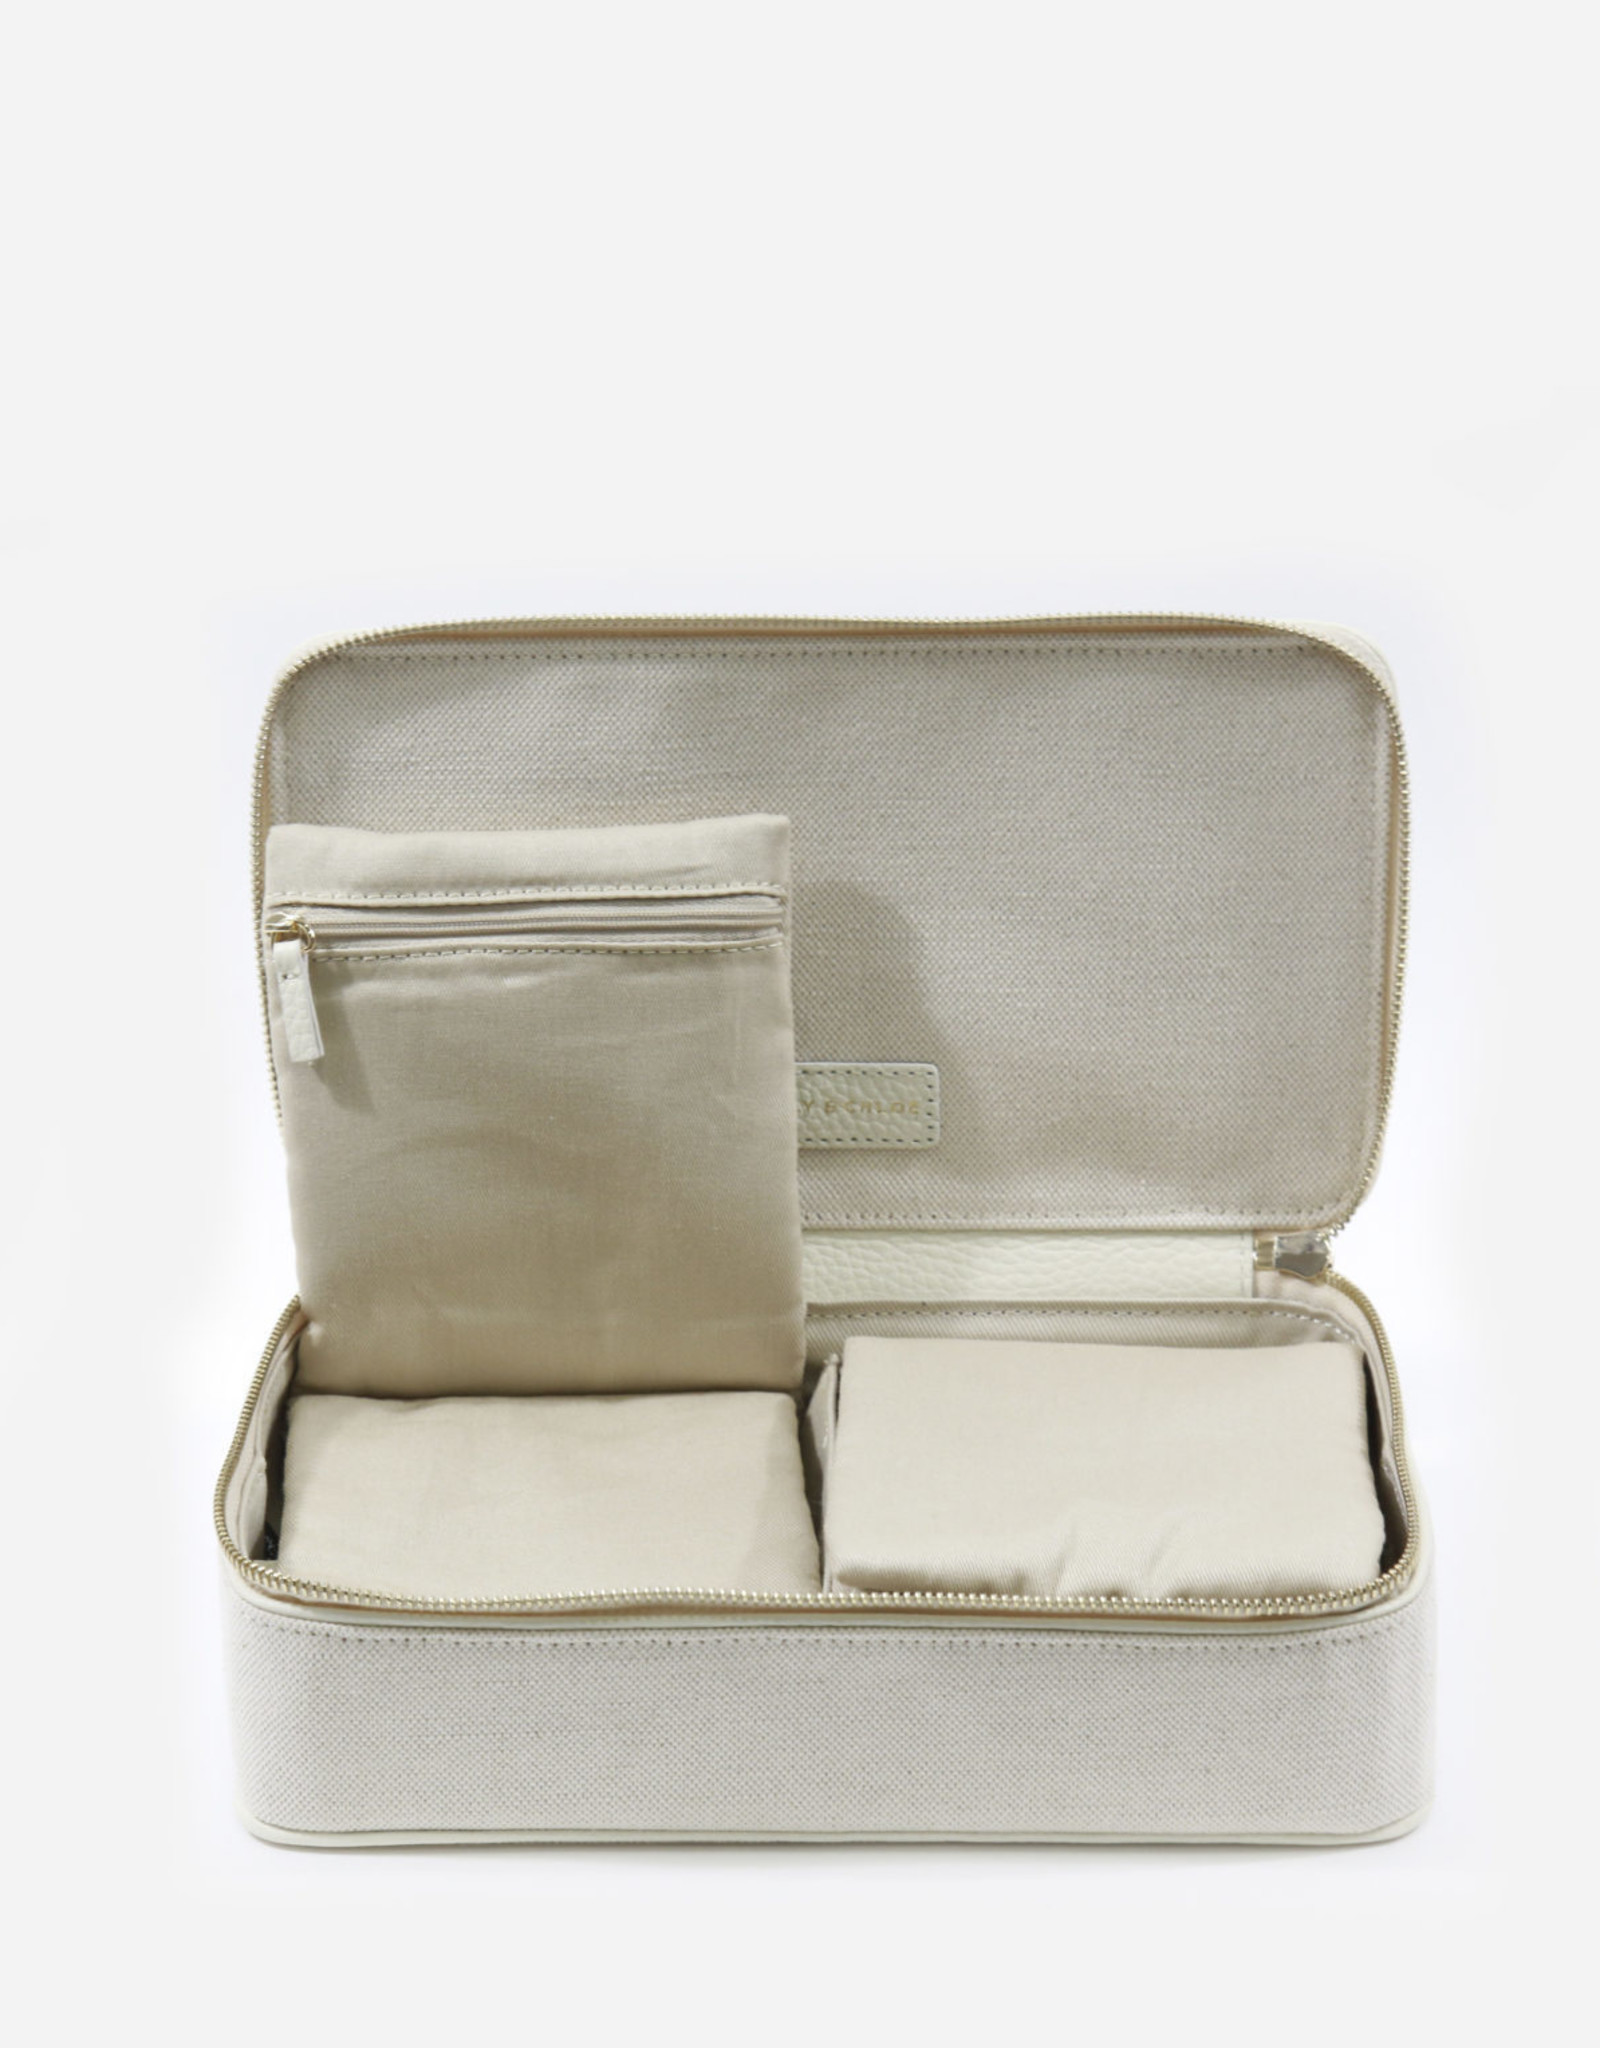 Neely & Chloe Jewelry Case